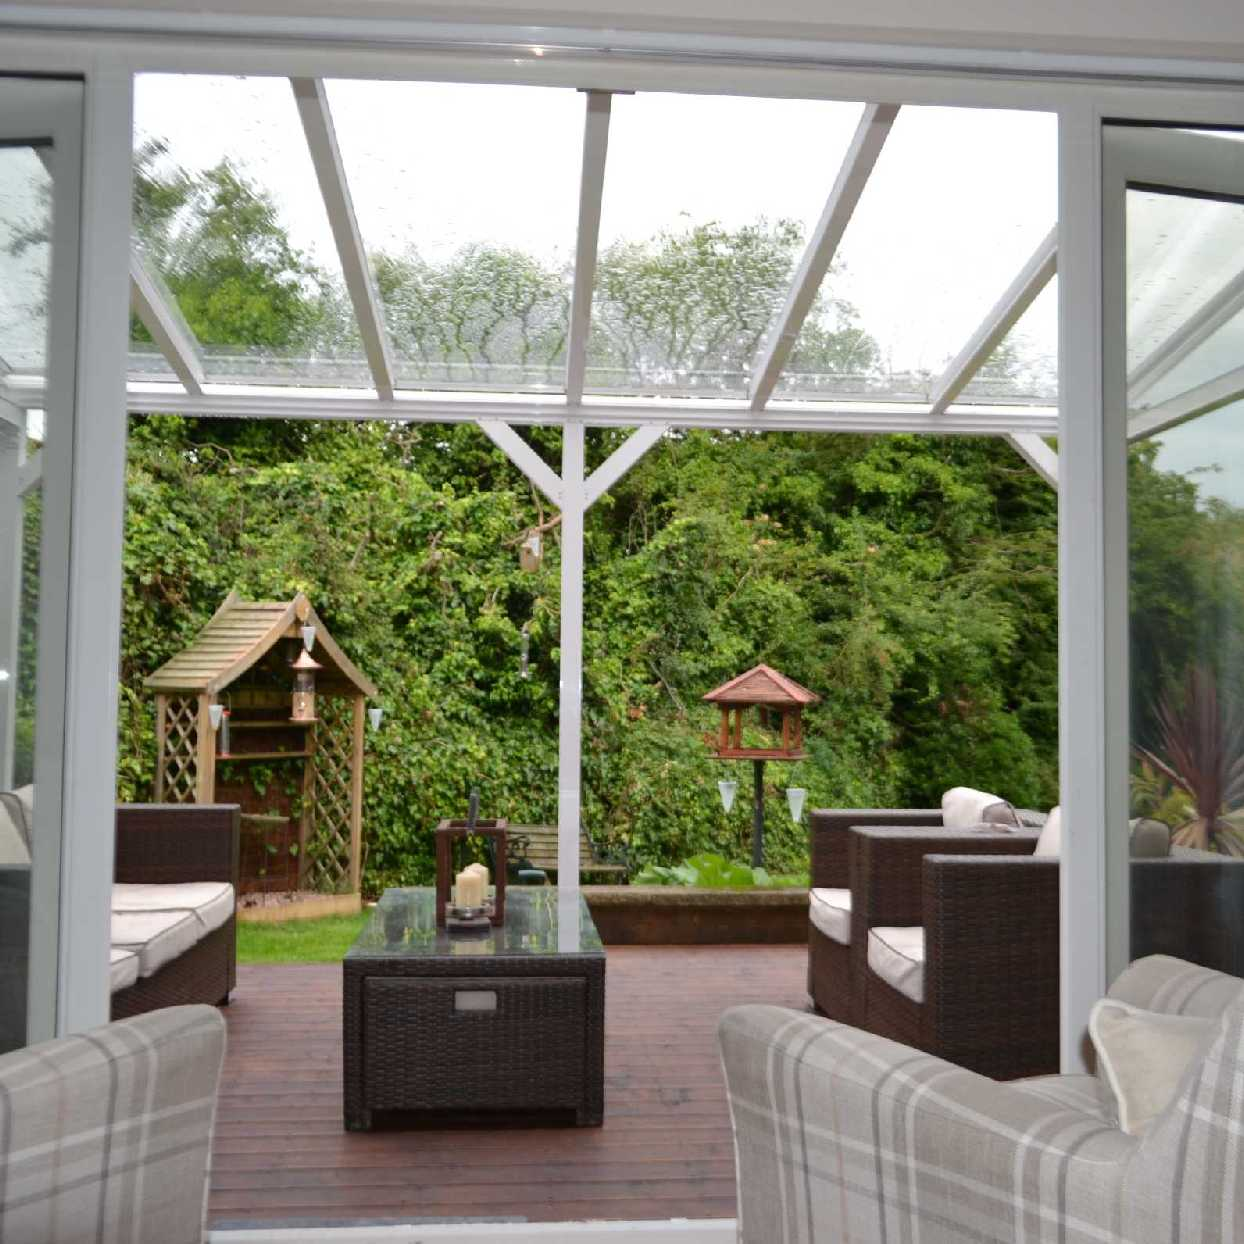 Great selection of Omega Smart White Lean-To Canopy UNGLAZED for 6mm Glazing - 7.0m (W) x 1.5m (P), (4) Supporting Posts